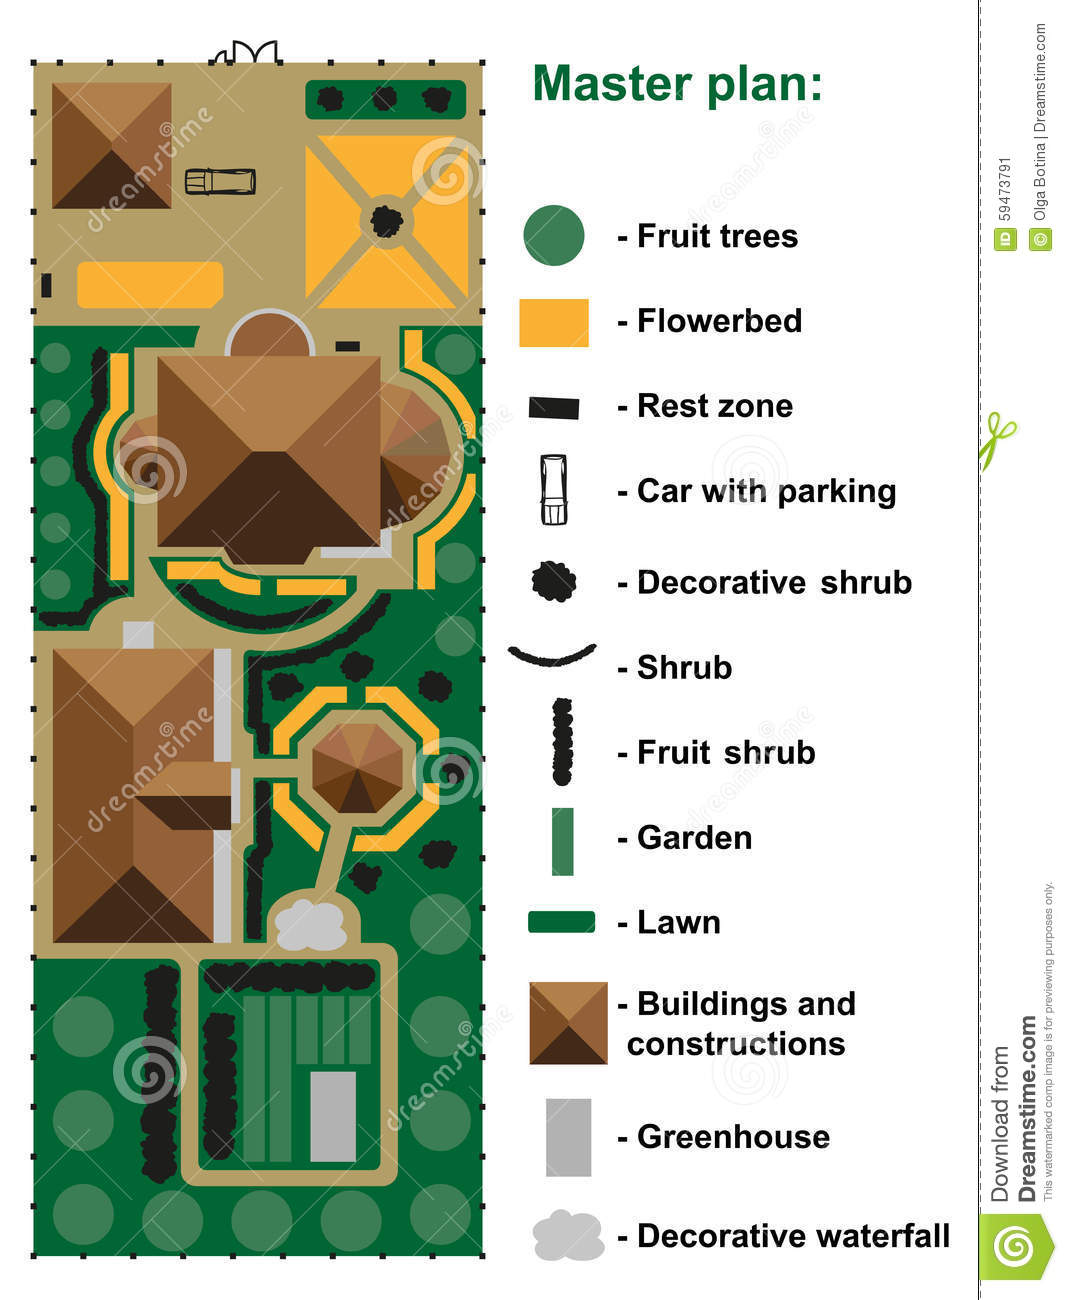 General site plan to house. General Site Plan To House Stock Vector   Image  59473791